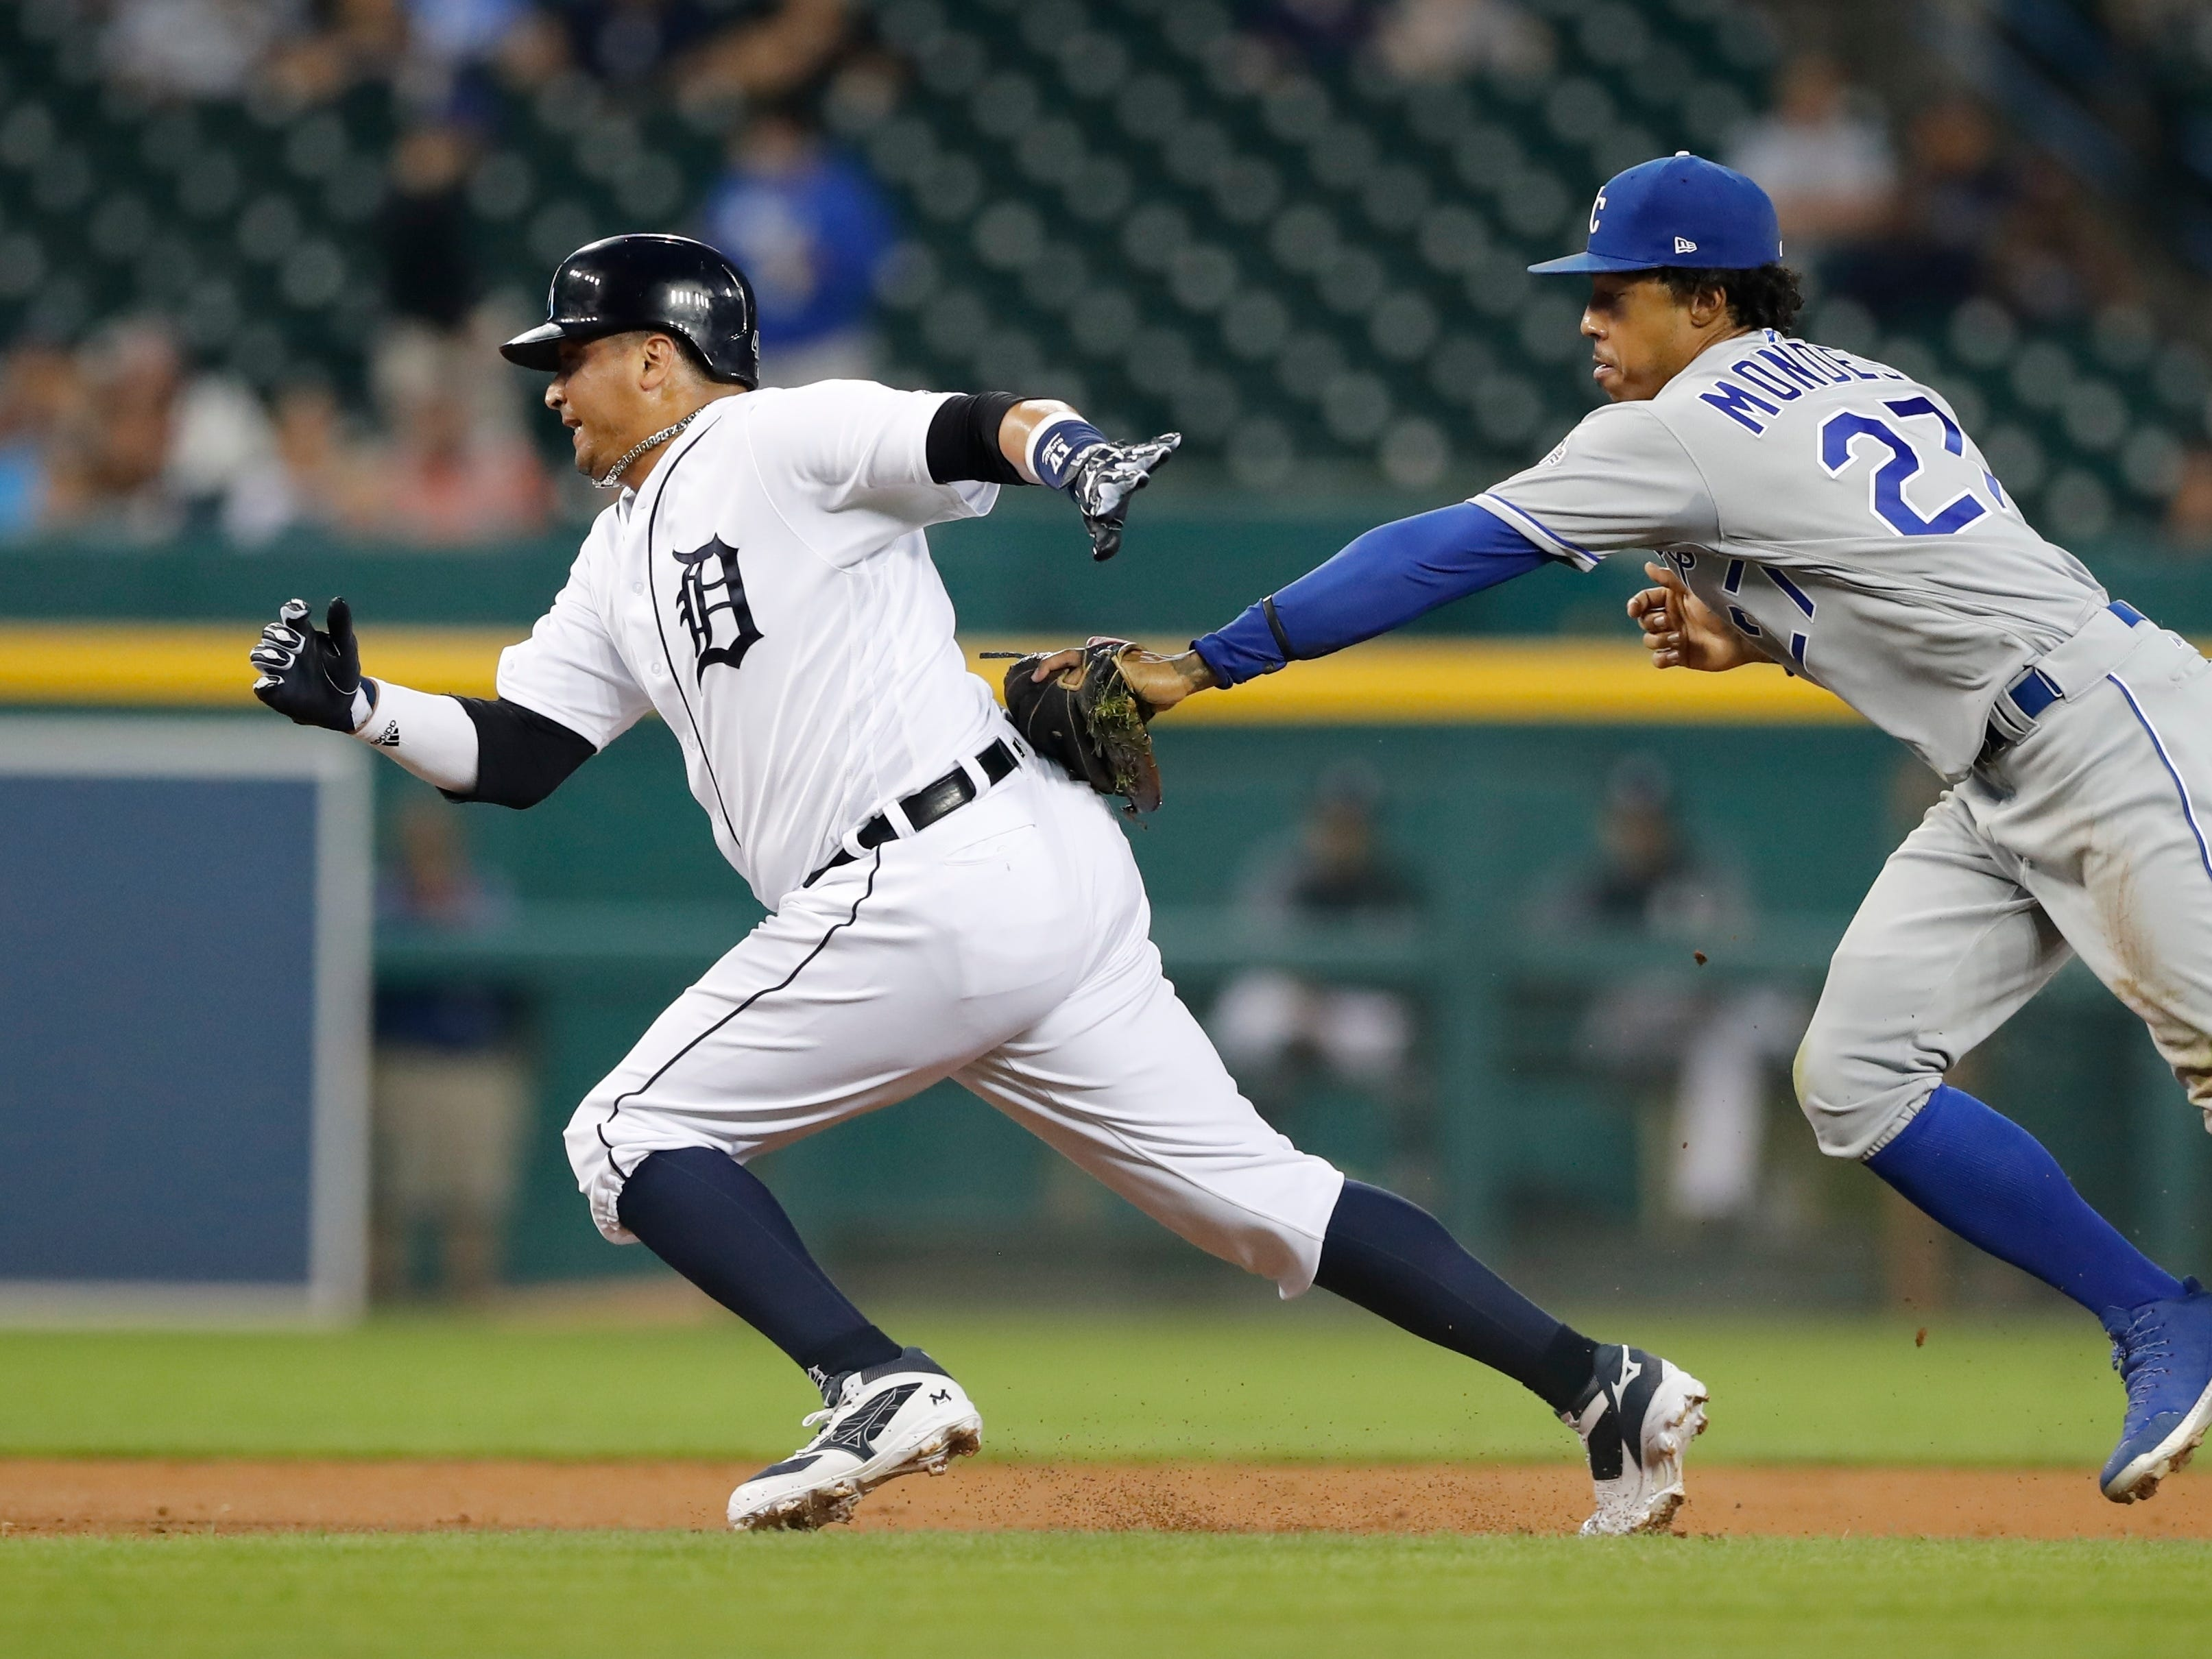 Detroit Tigers' Victor Martinez is caught in a rundown by Kansas City Royals second baseman Adalberto Mondesi during the first inning Thursday, Sept. 20, 2018, in Detroit.